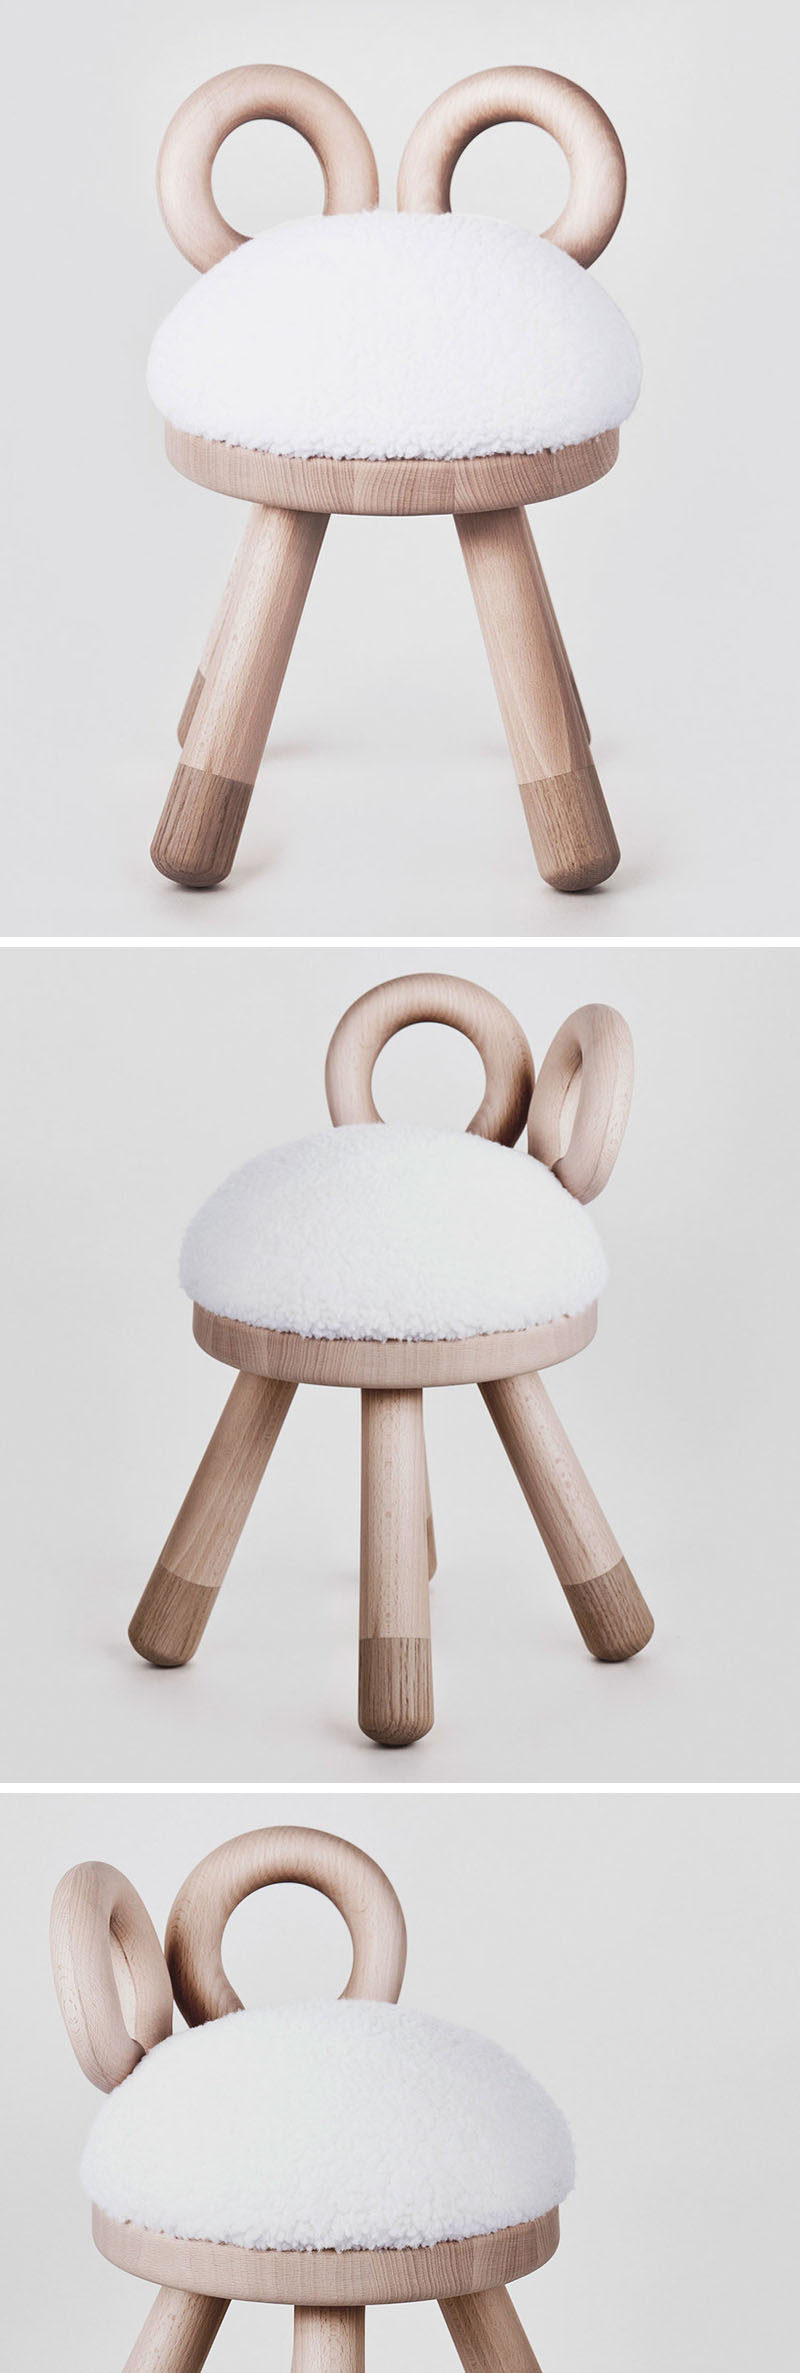 Japanese designer Takeshi Sawada, has designed this sheep stool as part of a collection of quirky farm animal inspired stools for EO - Elements Optimal.